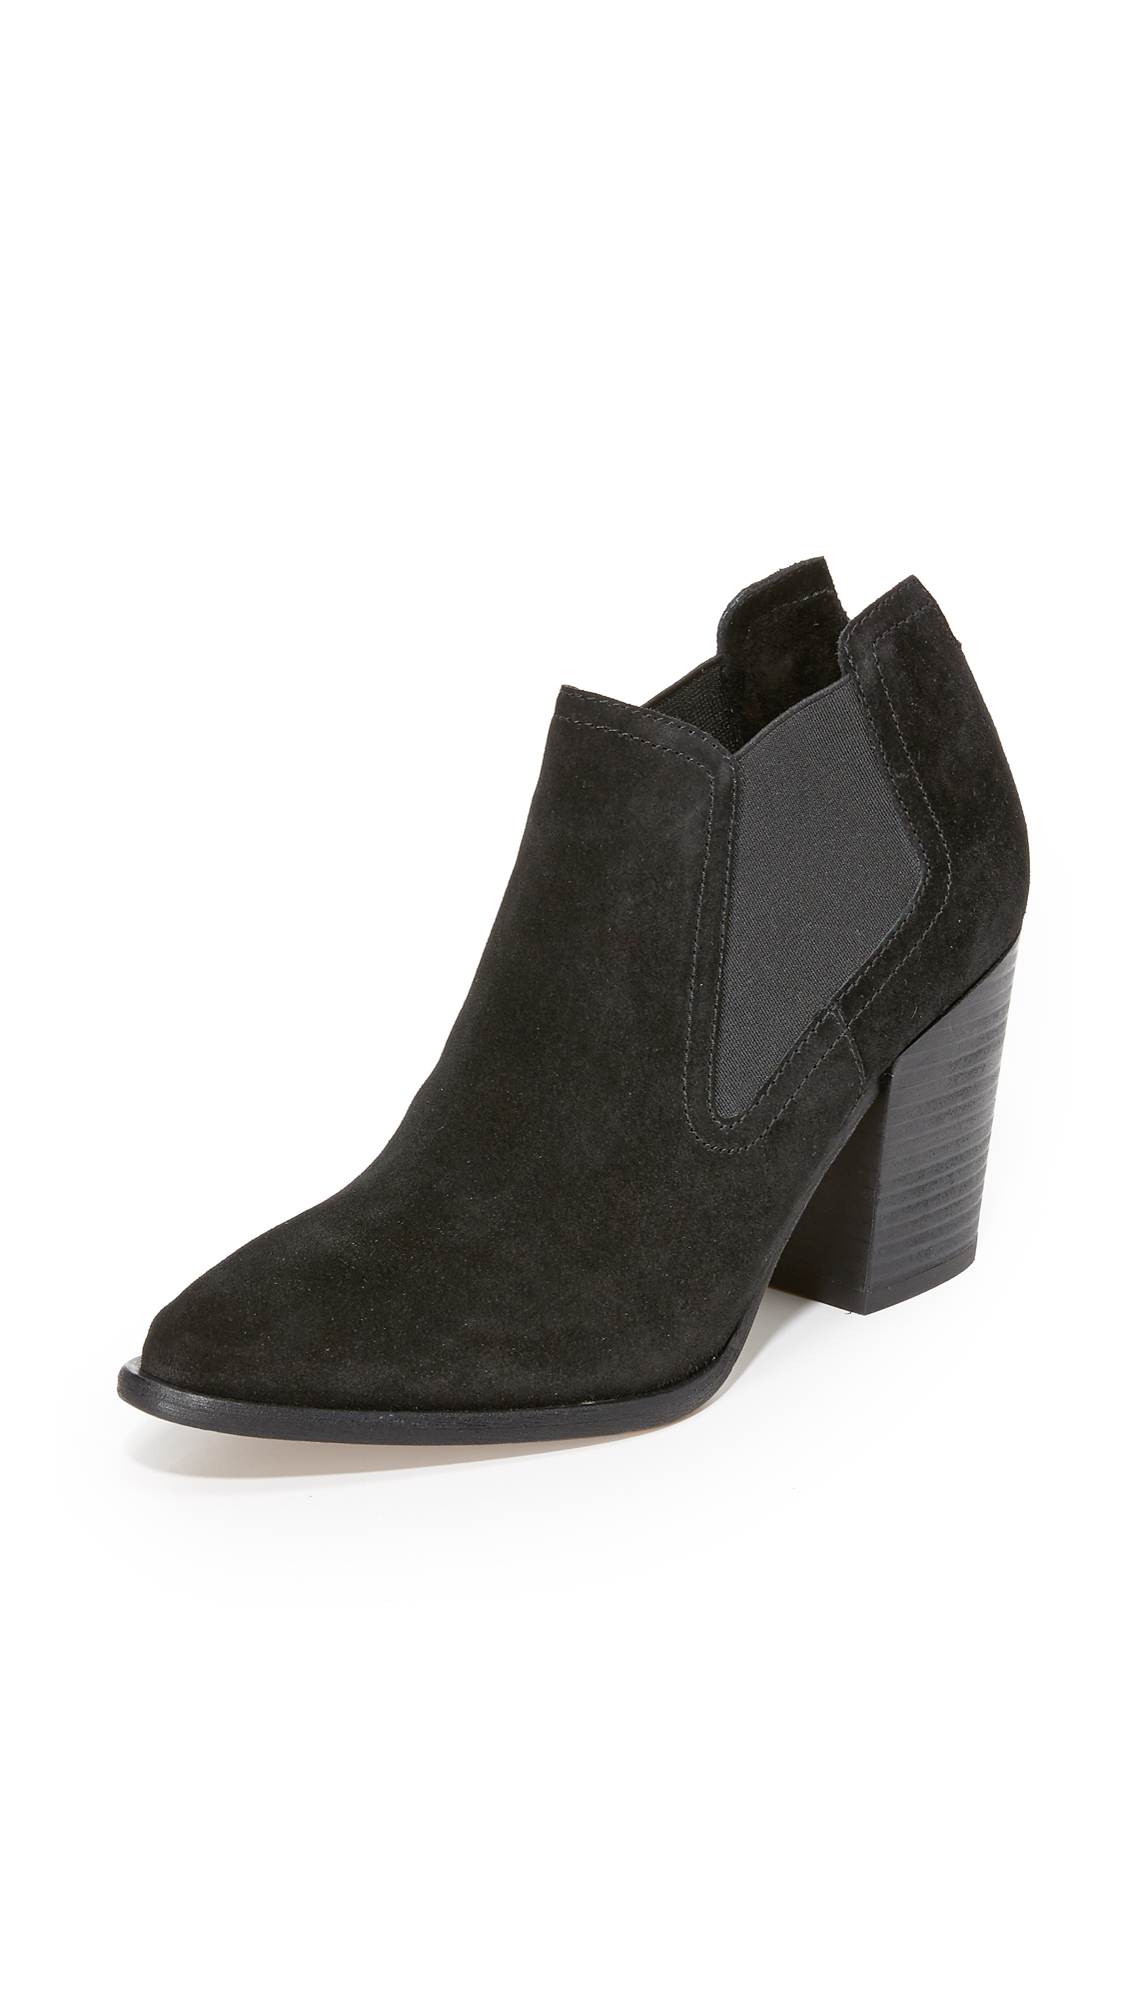 Sigerson Morrison Gamela Booties - Black